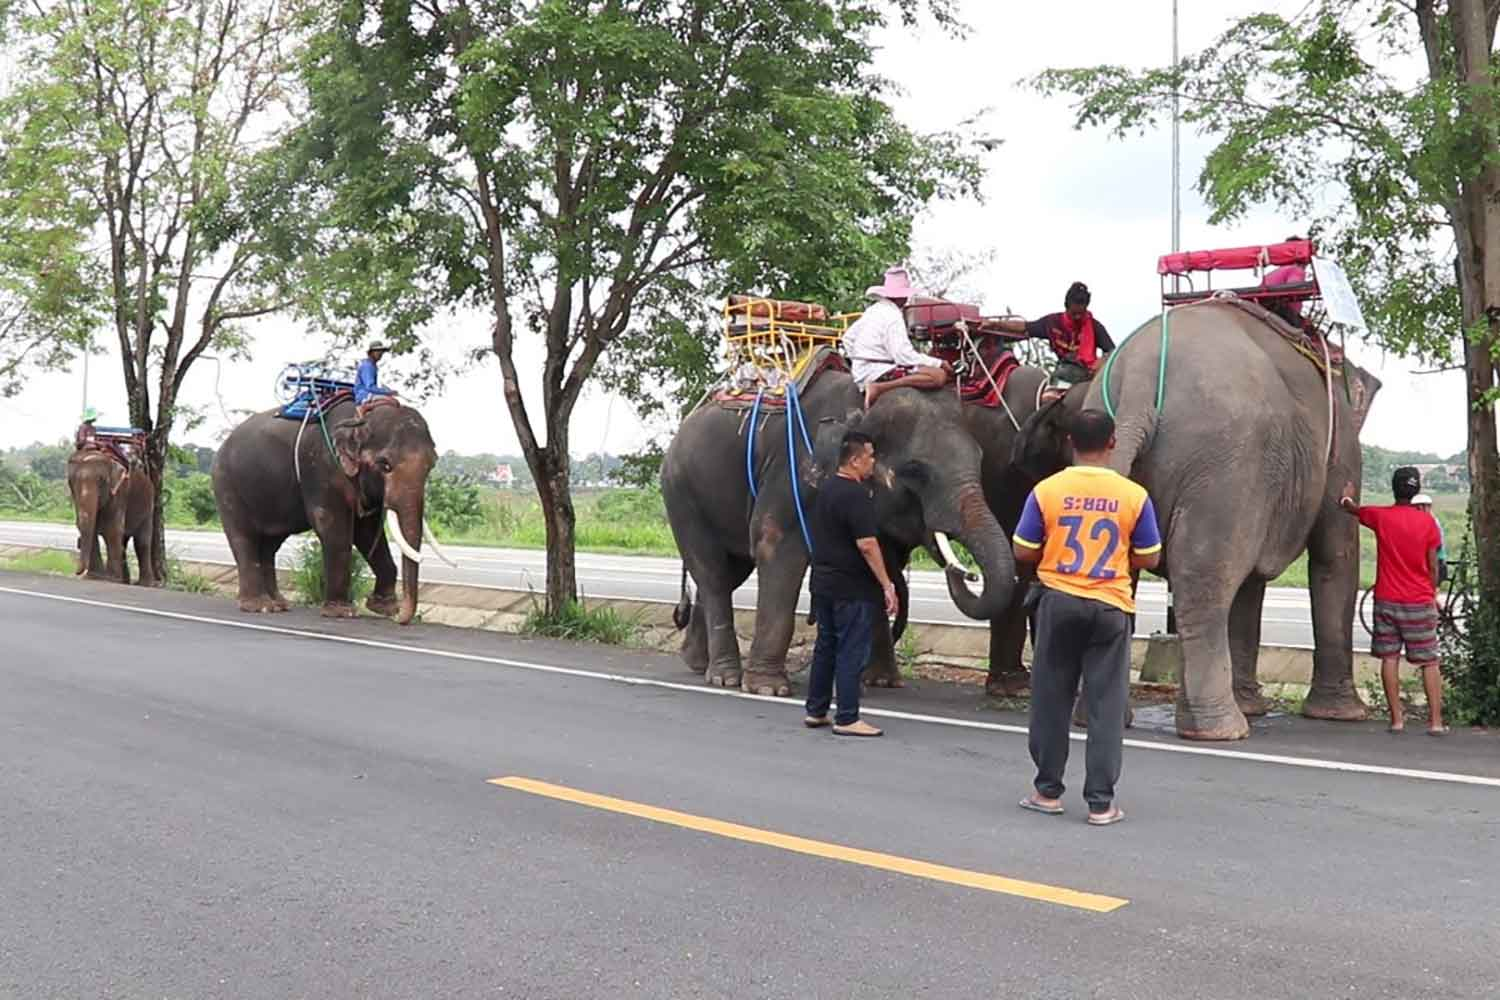 Five unemployed elephants and their owners begin walking from Pattaya to their native province of Surin, in tambon Nong Prue of Bang Lamung district, Chon Buri, on Tuesday.